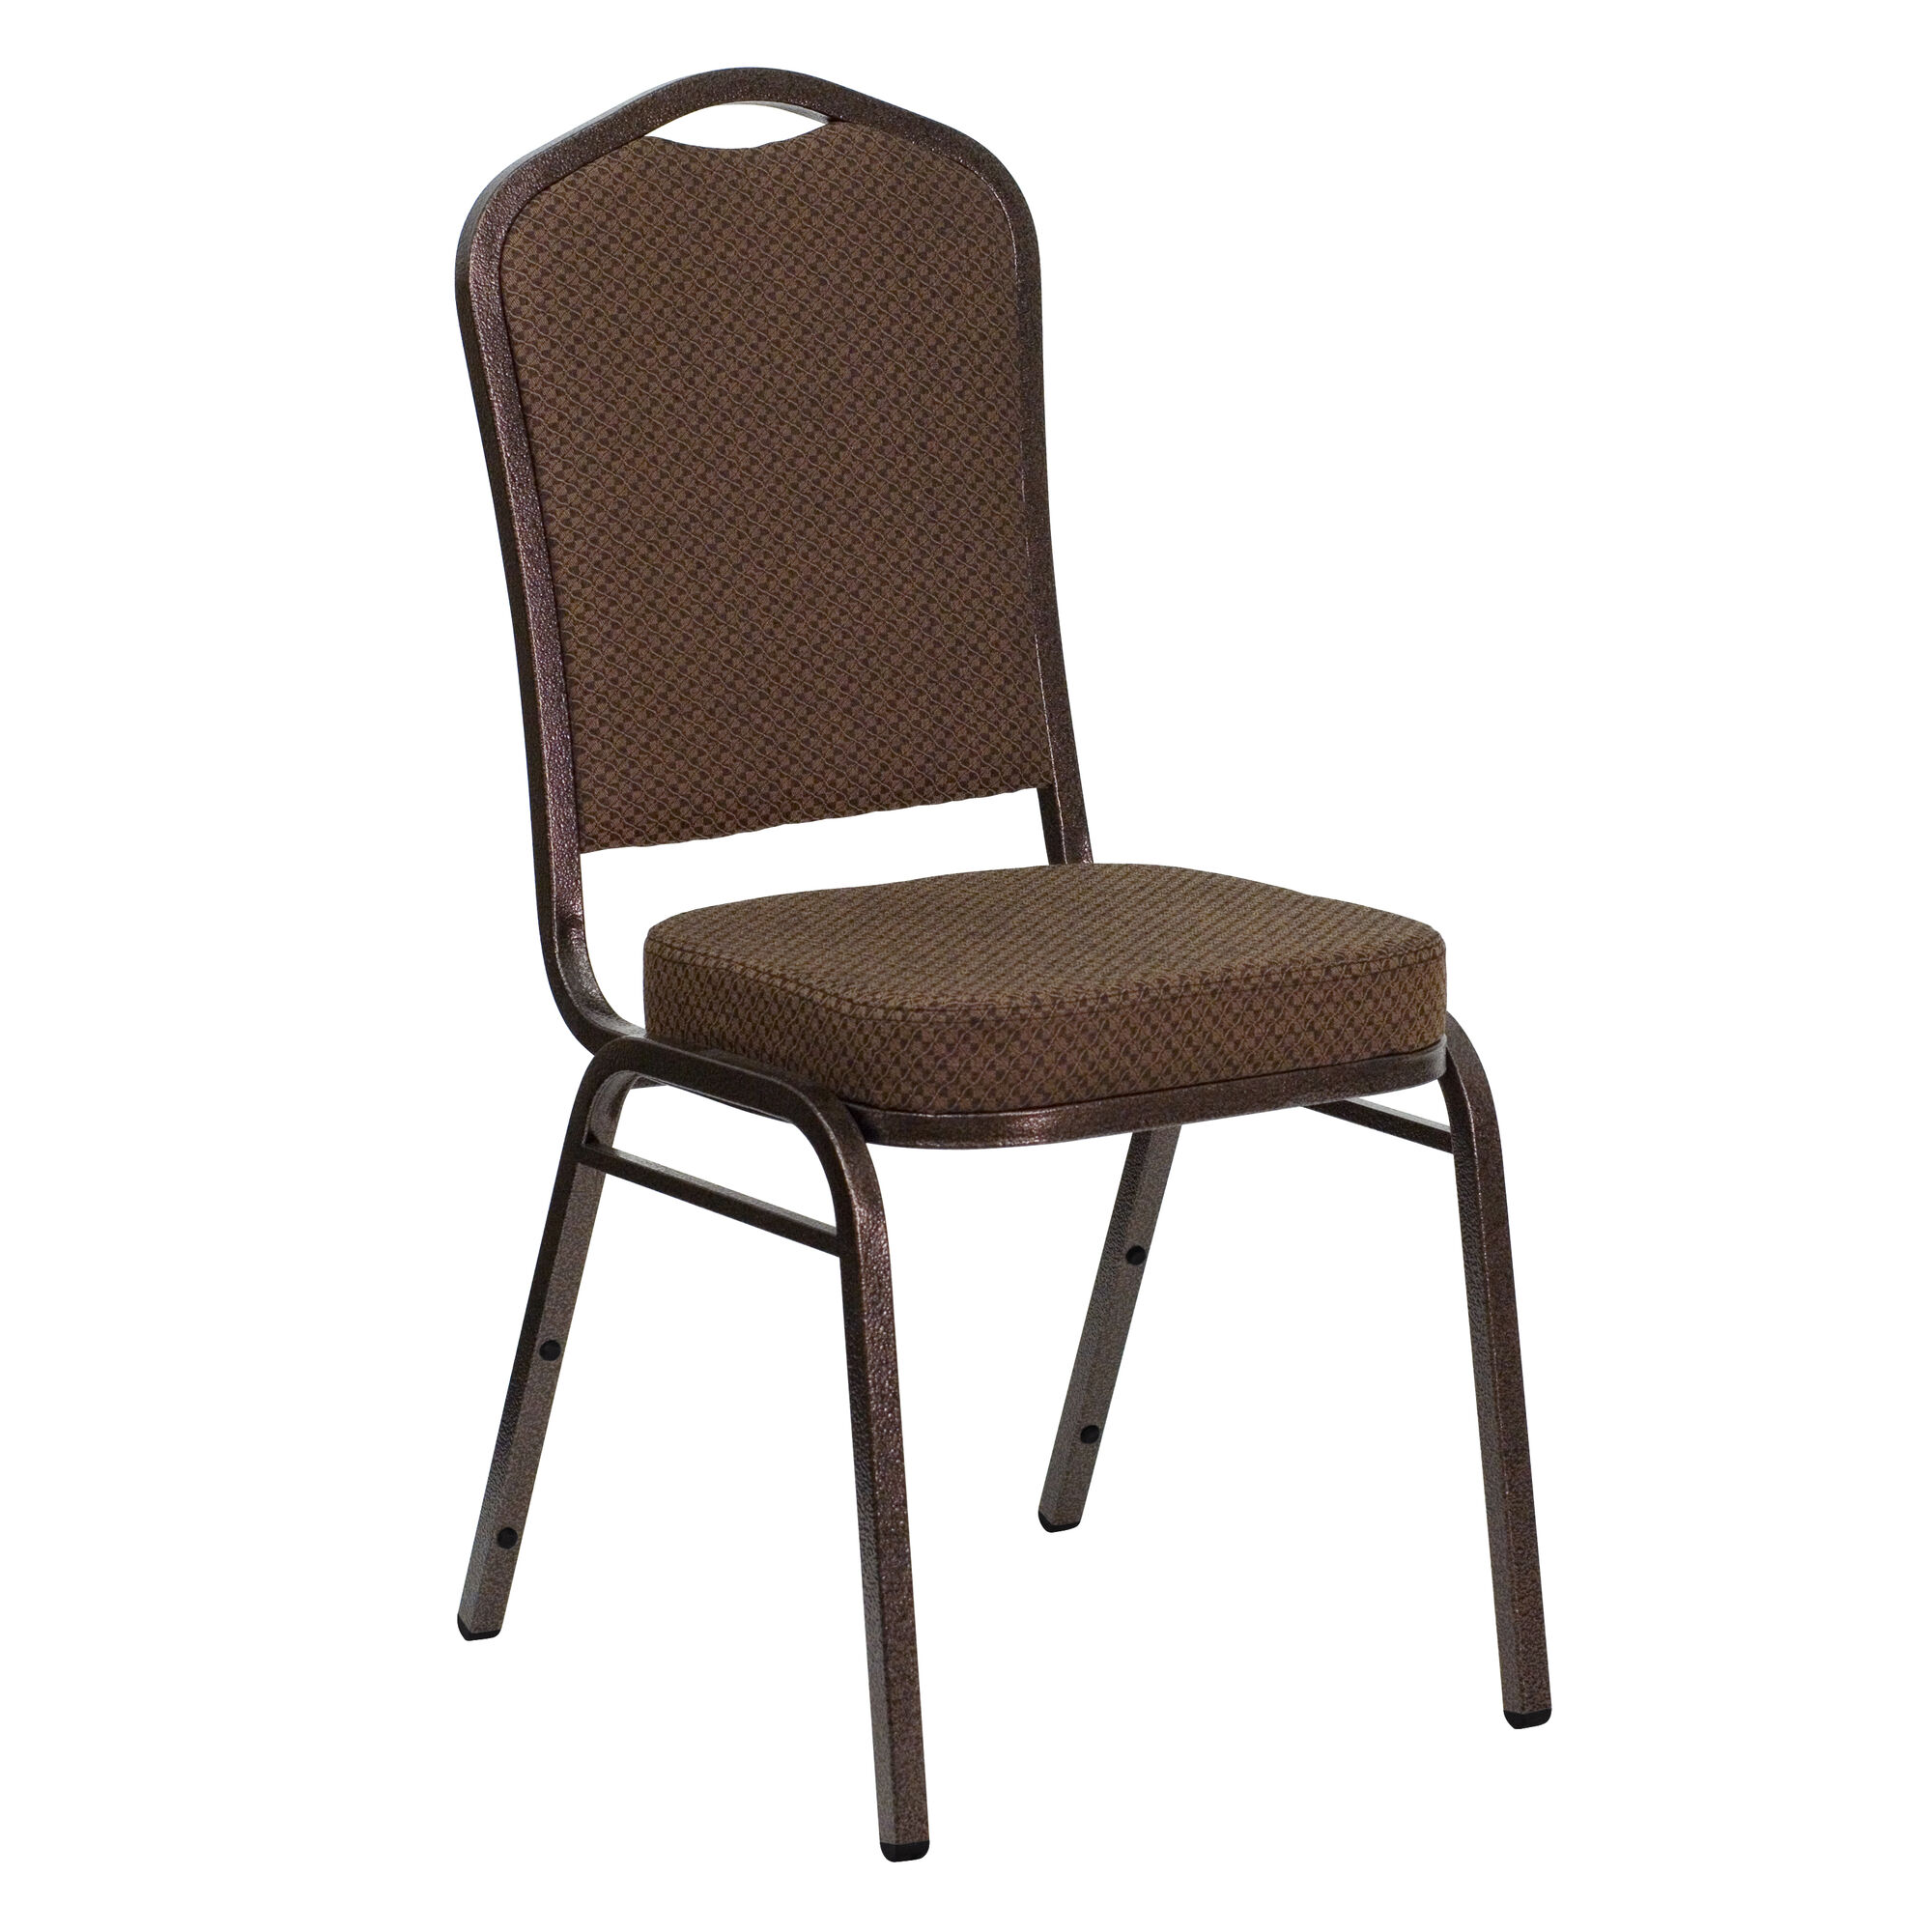 StackChairs4Less: Banquet-Stack-Chairs